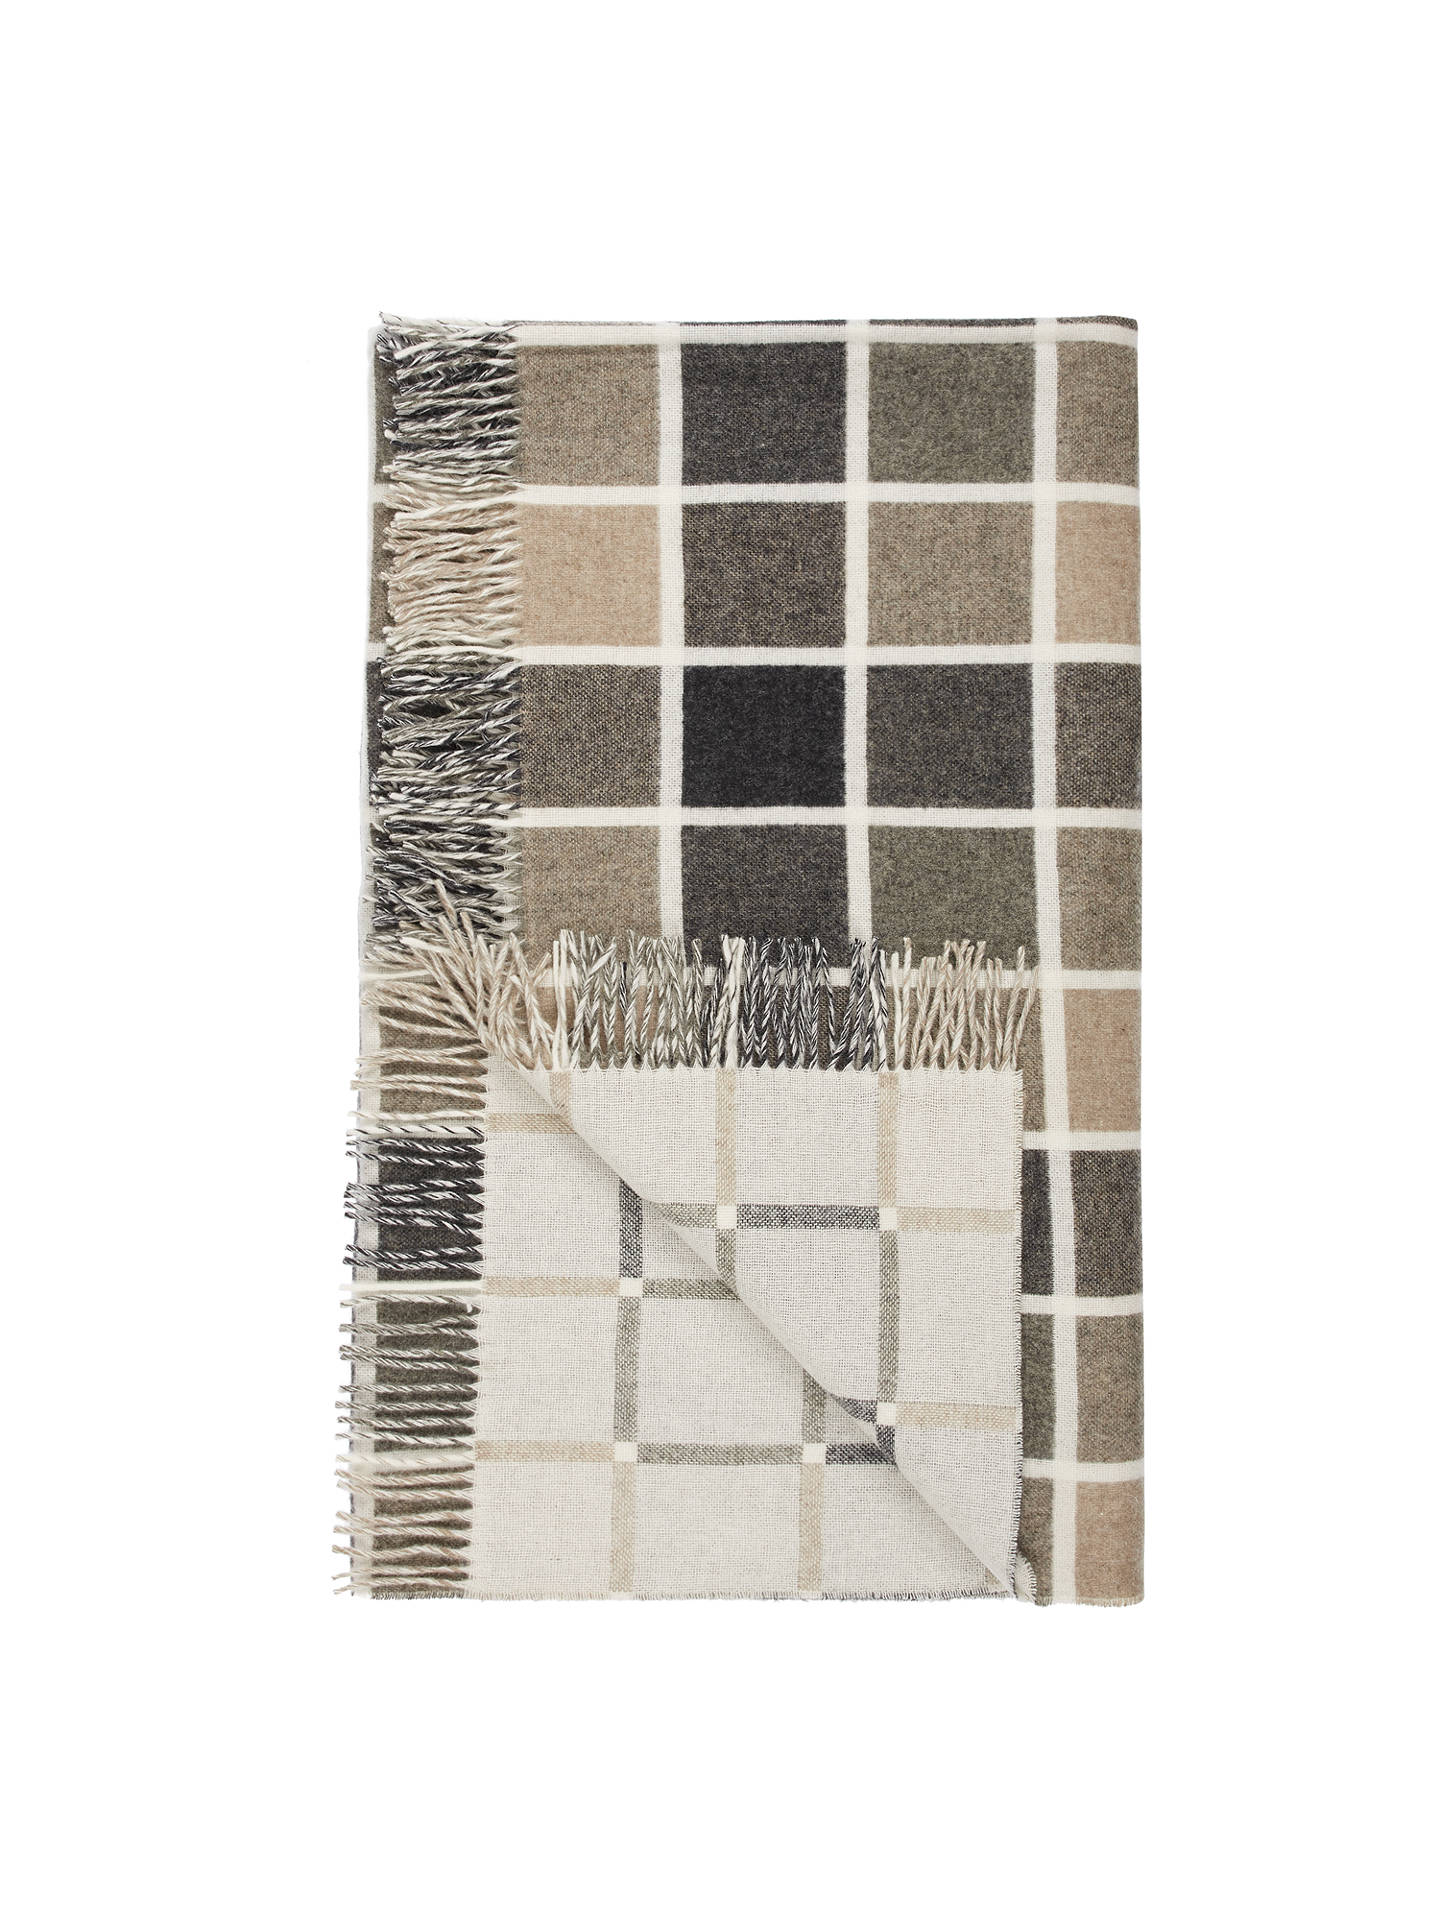 Buy Bronte by Moon Blocks 100% Lambswool Throw, Natural / Grey, L185 x W140cm Online at johnlewis.com